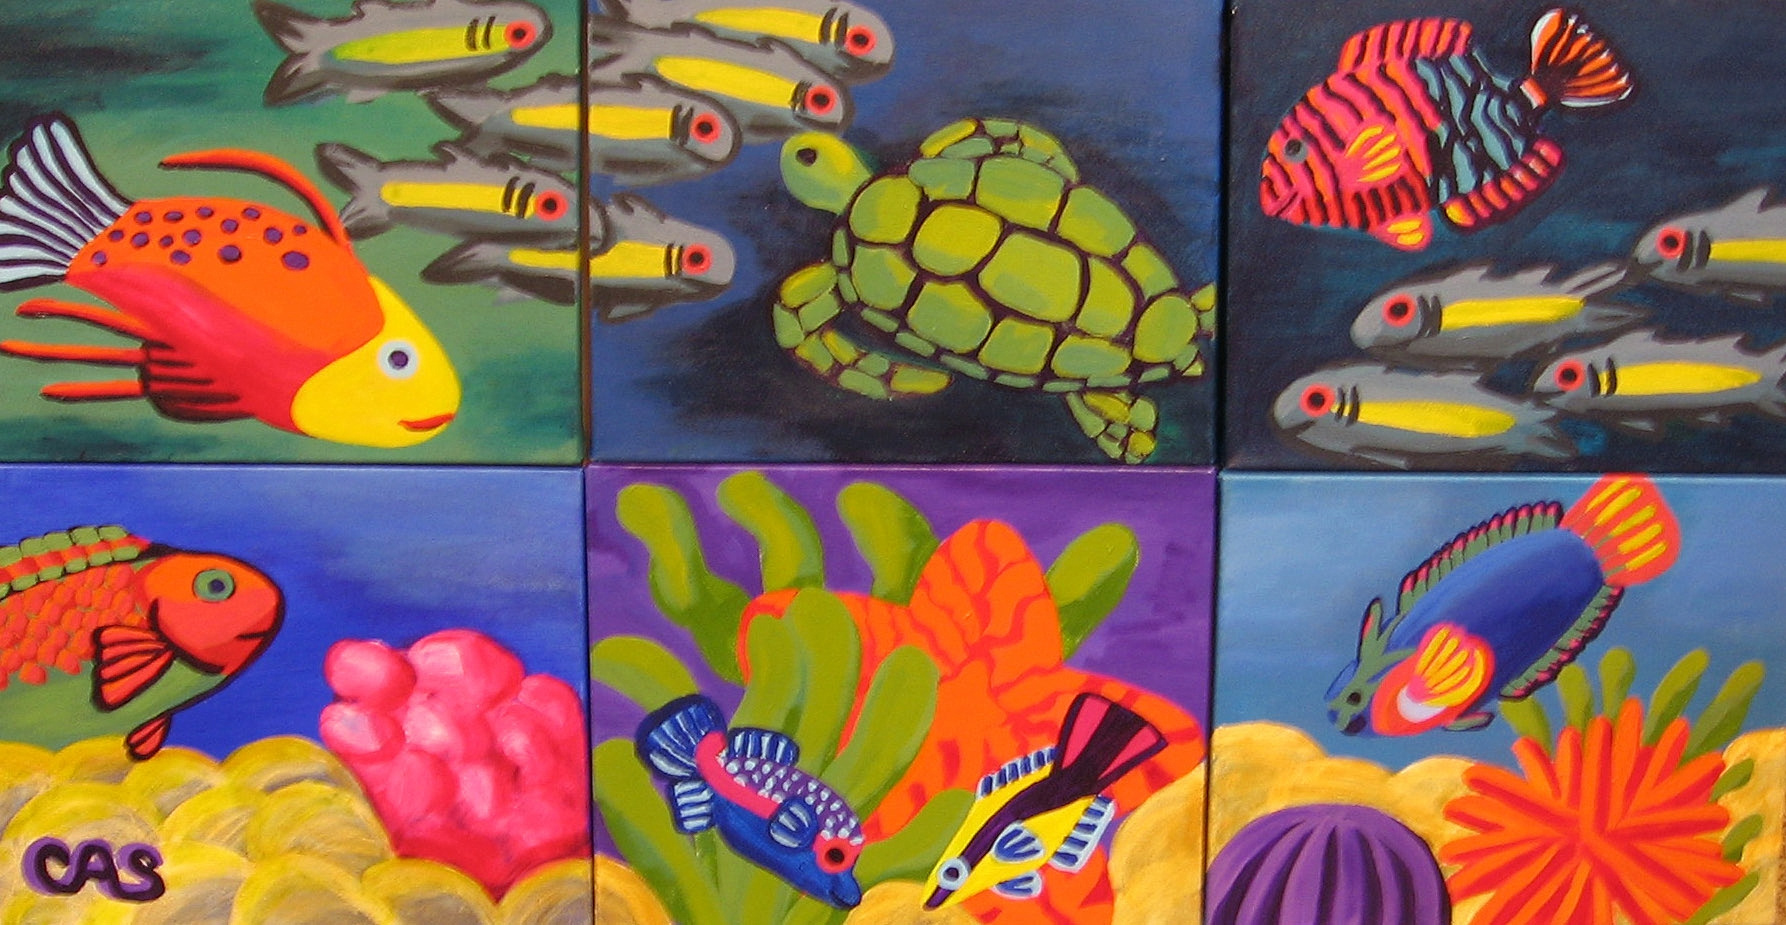 https://0201.nccdn.net/1_2/000/000/11b/dea/tropical-fish-fantasy-22x42-acrylic-on-canvases-1786x925.jpg